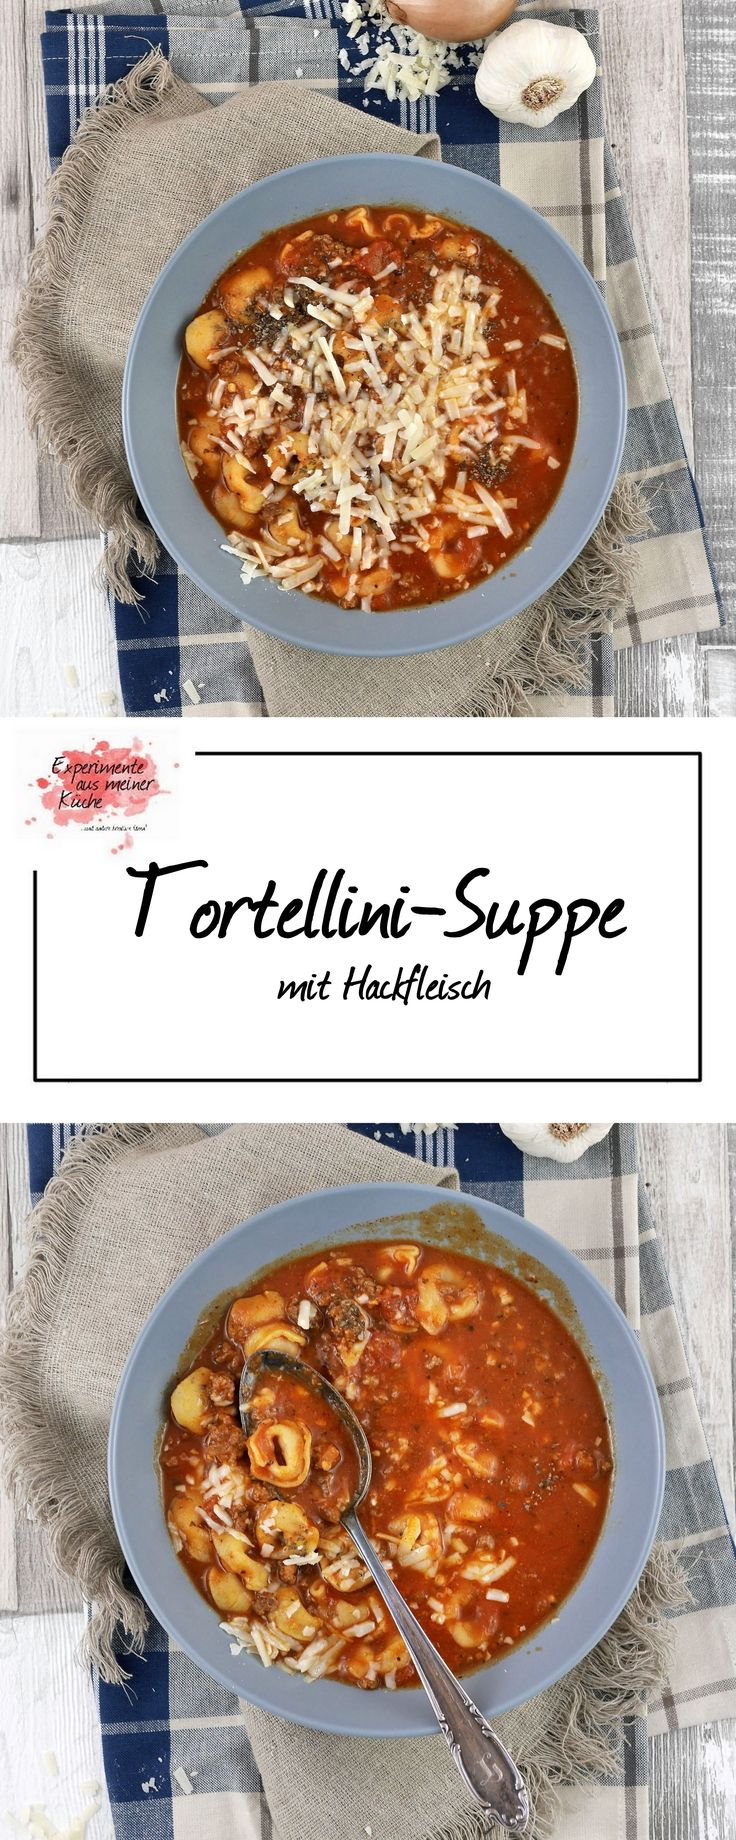 Tortellini-Suppe mit Hackfleisch | Kochen | Rezept | Pasta | Weight Watchers